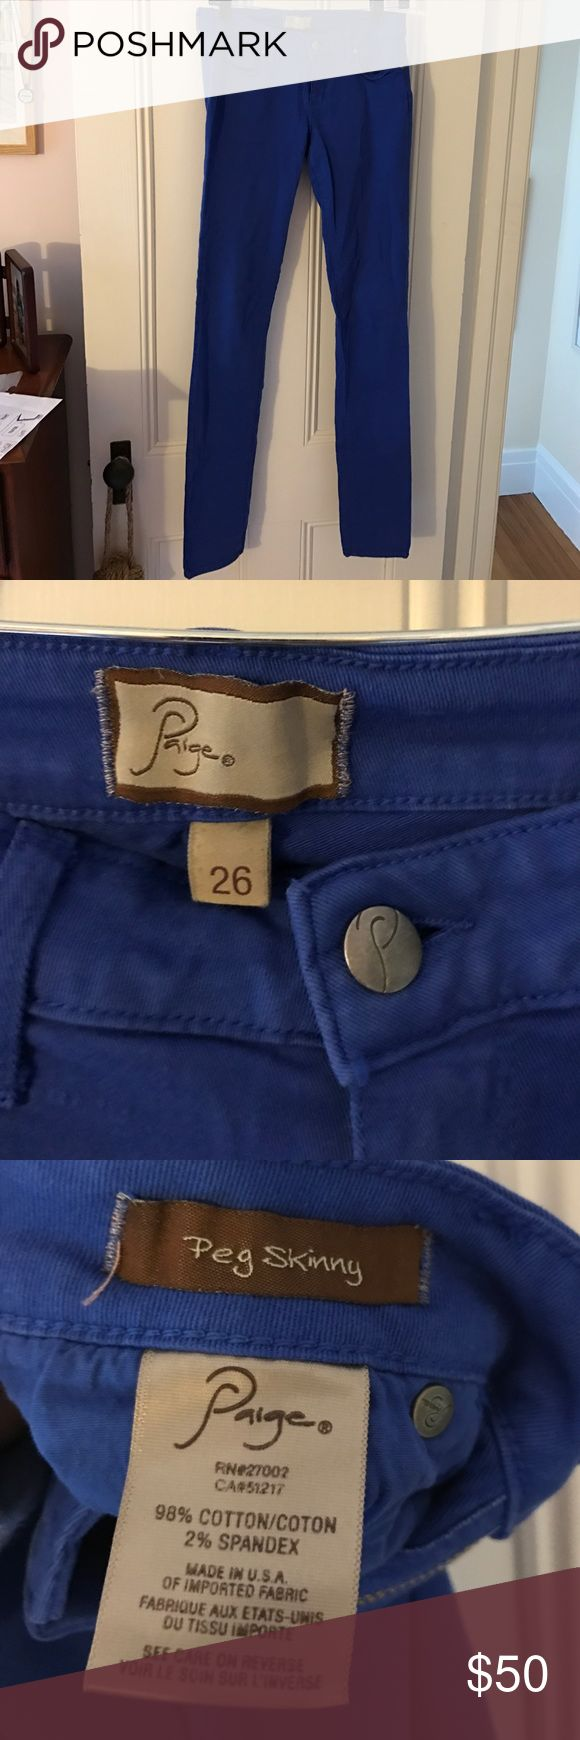 Paige Peg Skinny Bright Blue Jeans Beautiful cobalt blue color, stretch denim, barely worn Paige Jeans Jeans Skinny